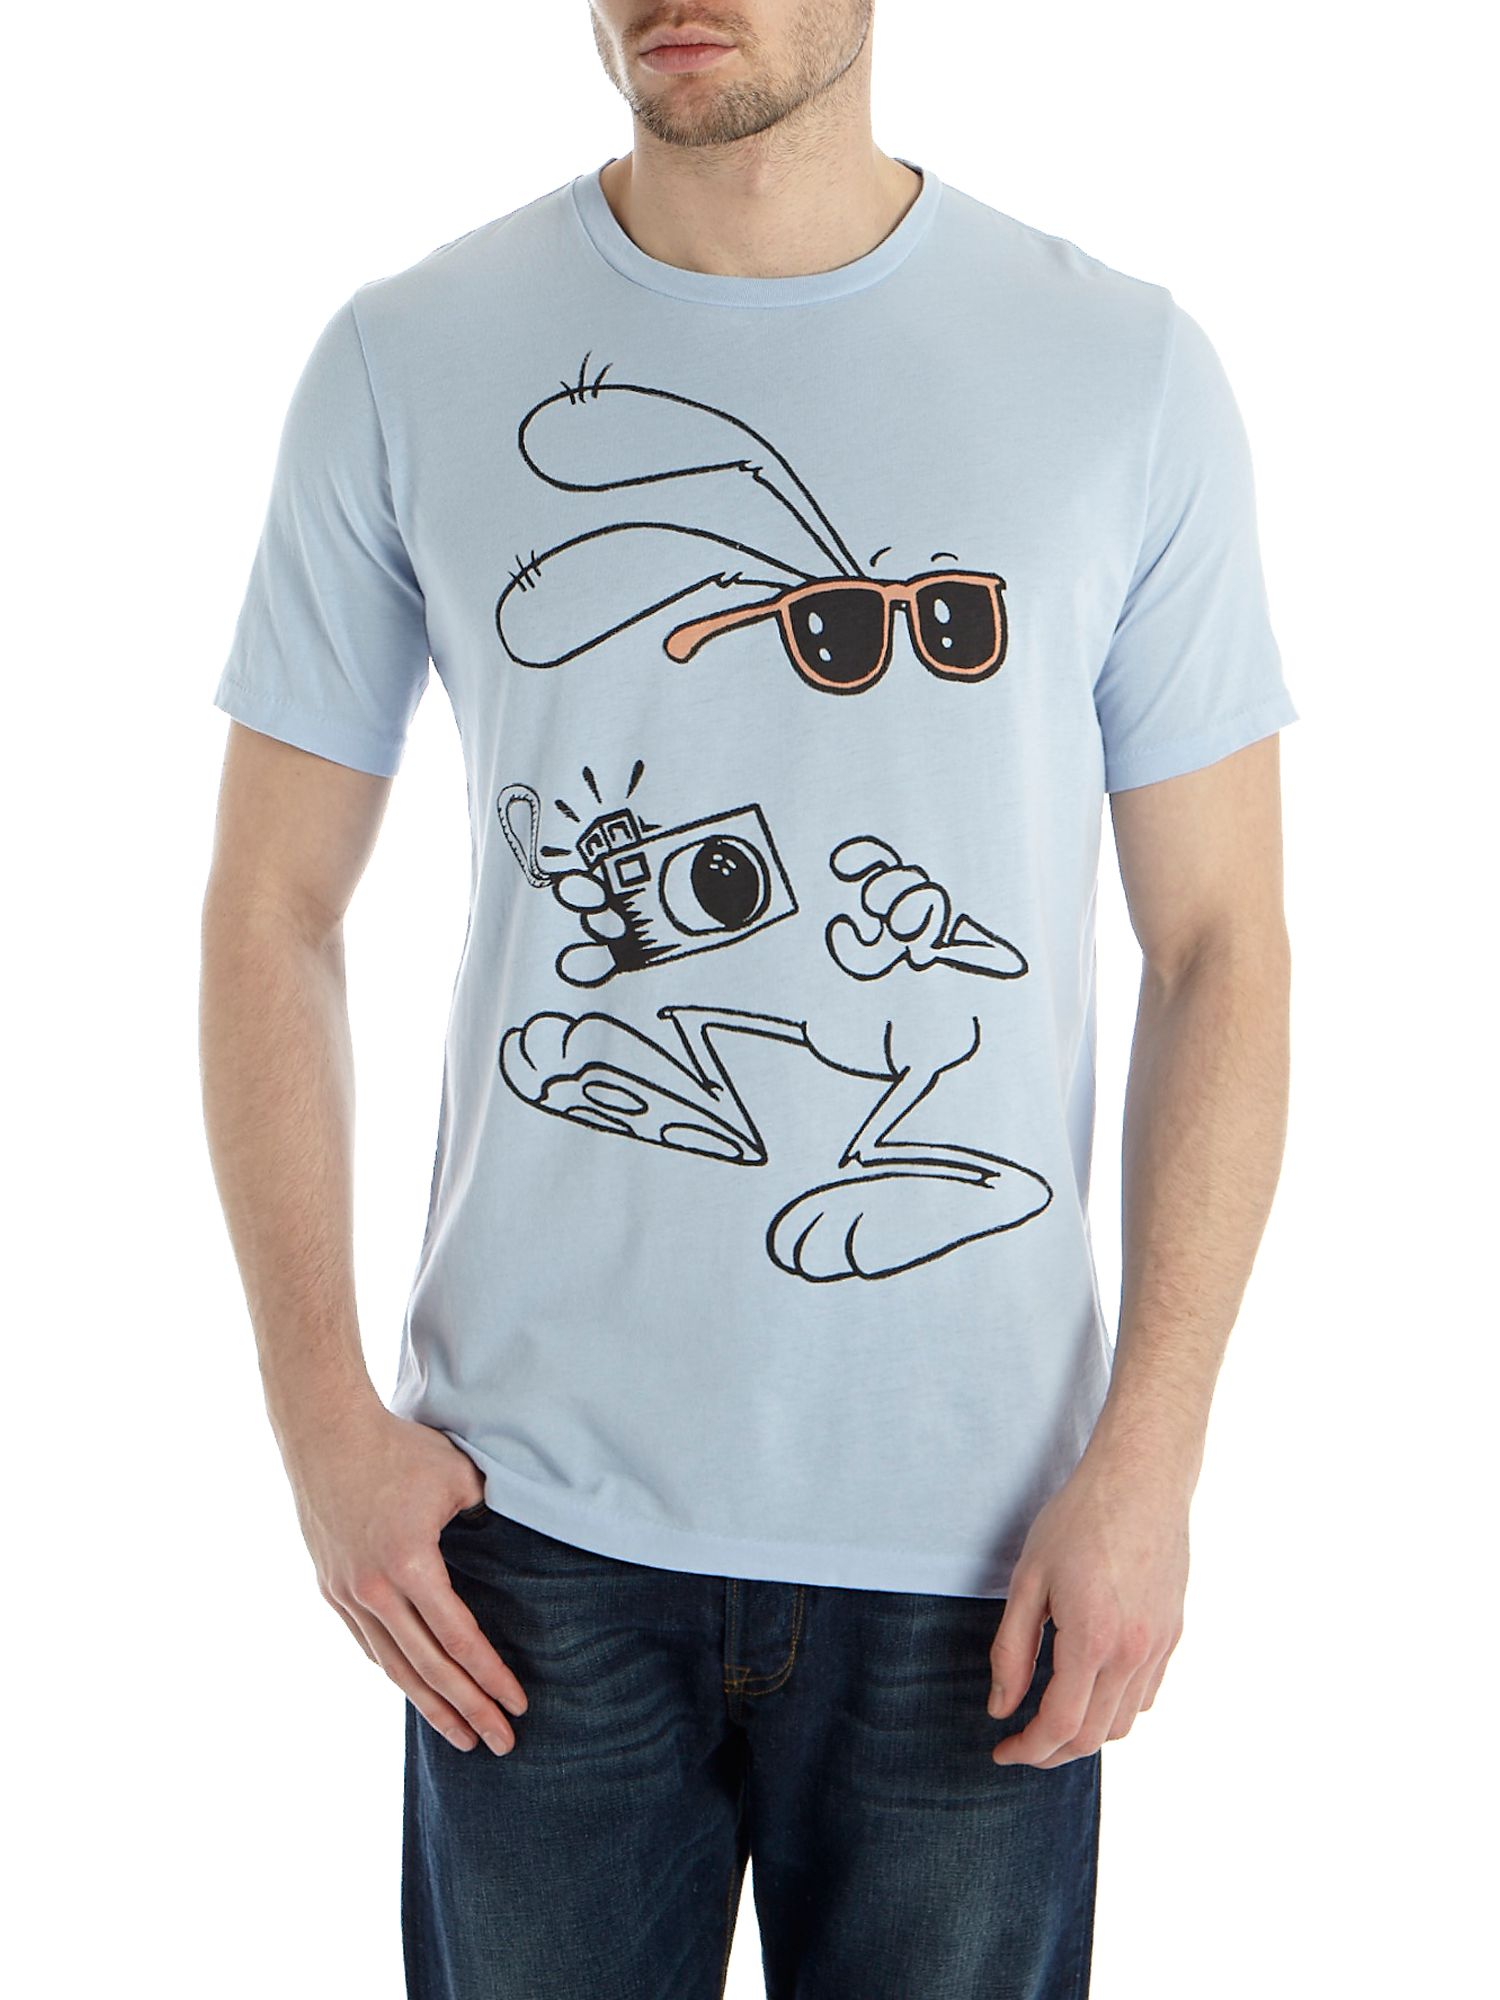 Rabbit print t-shirt